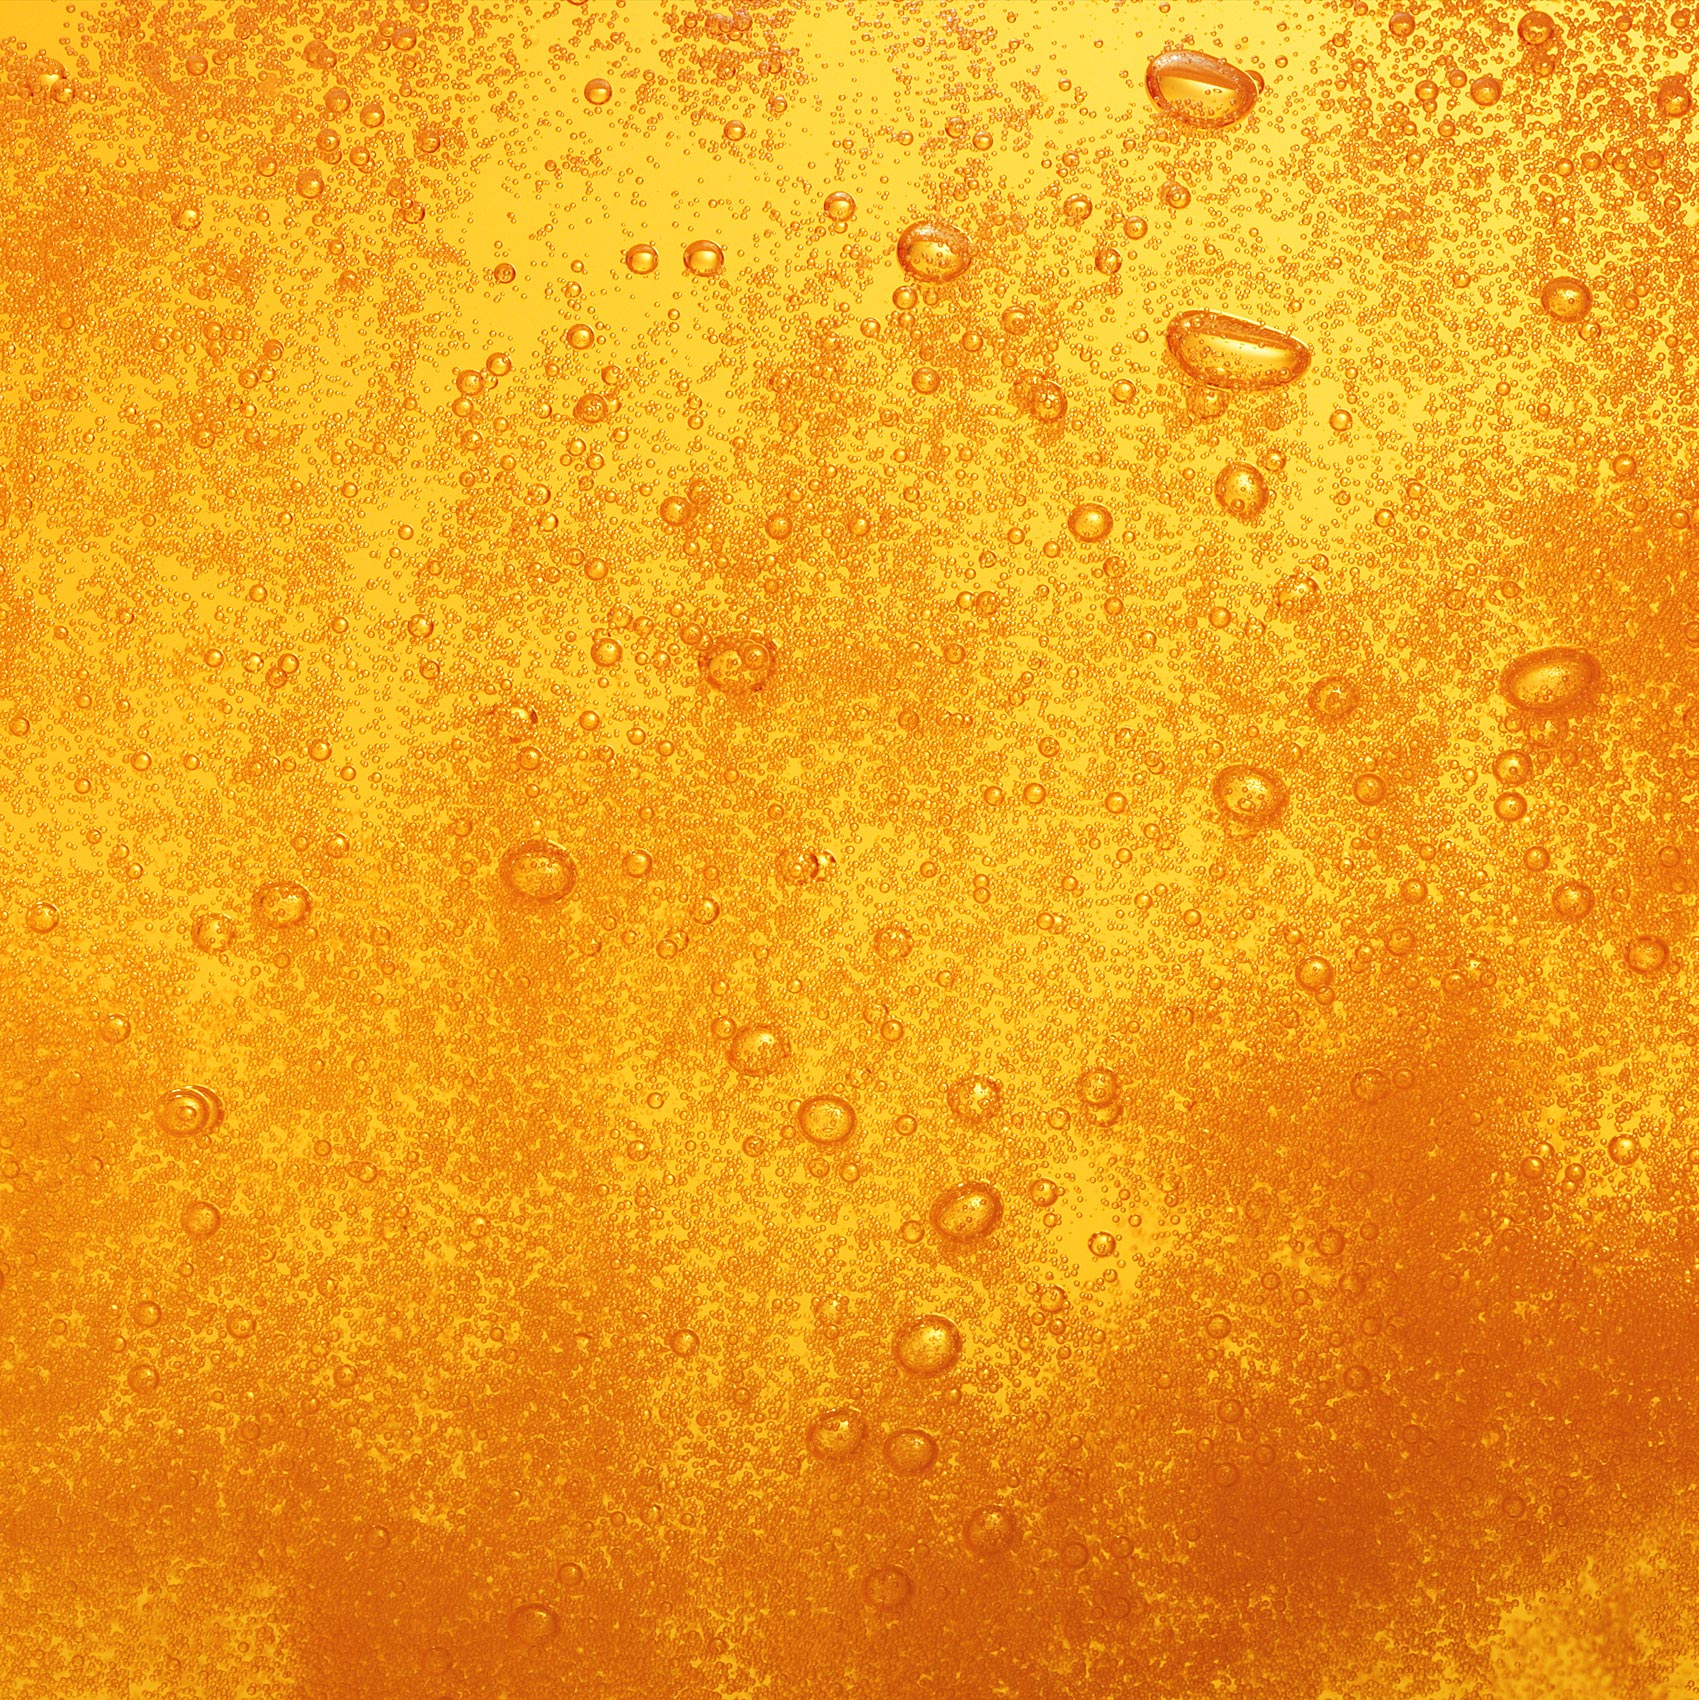 Nick_Rees-Drinks-Beer_Bubble-41